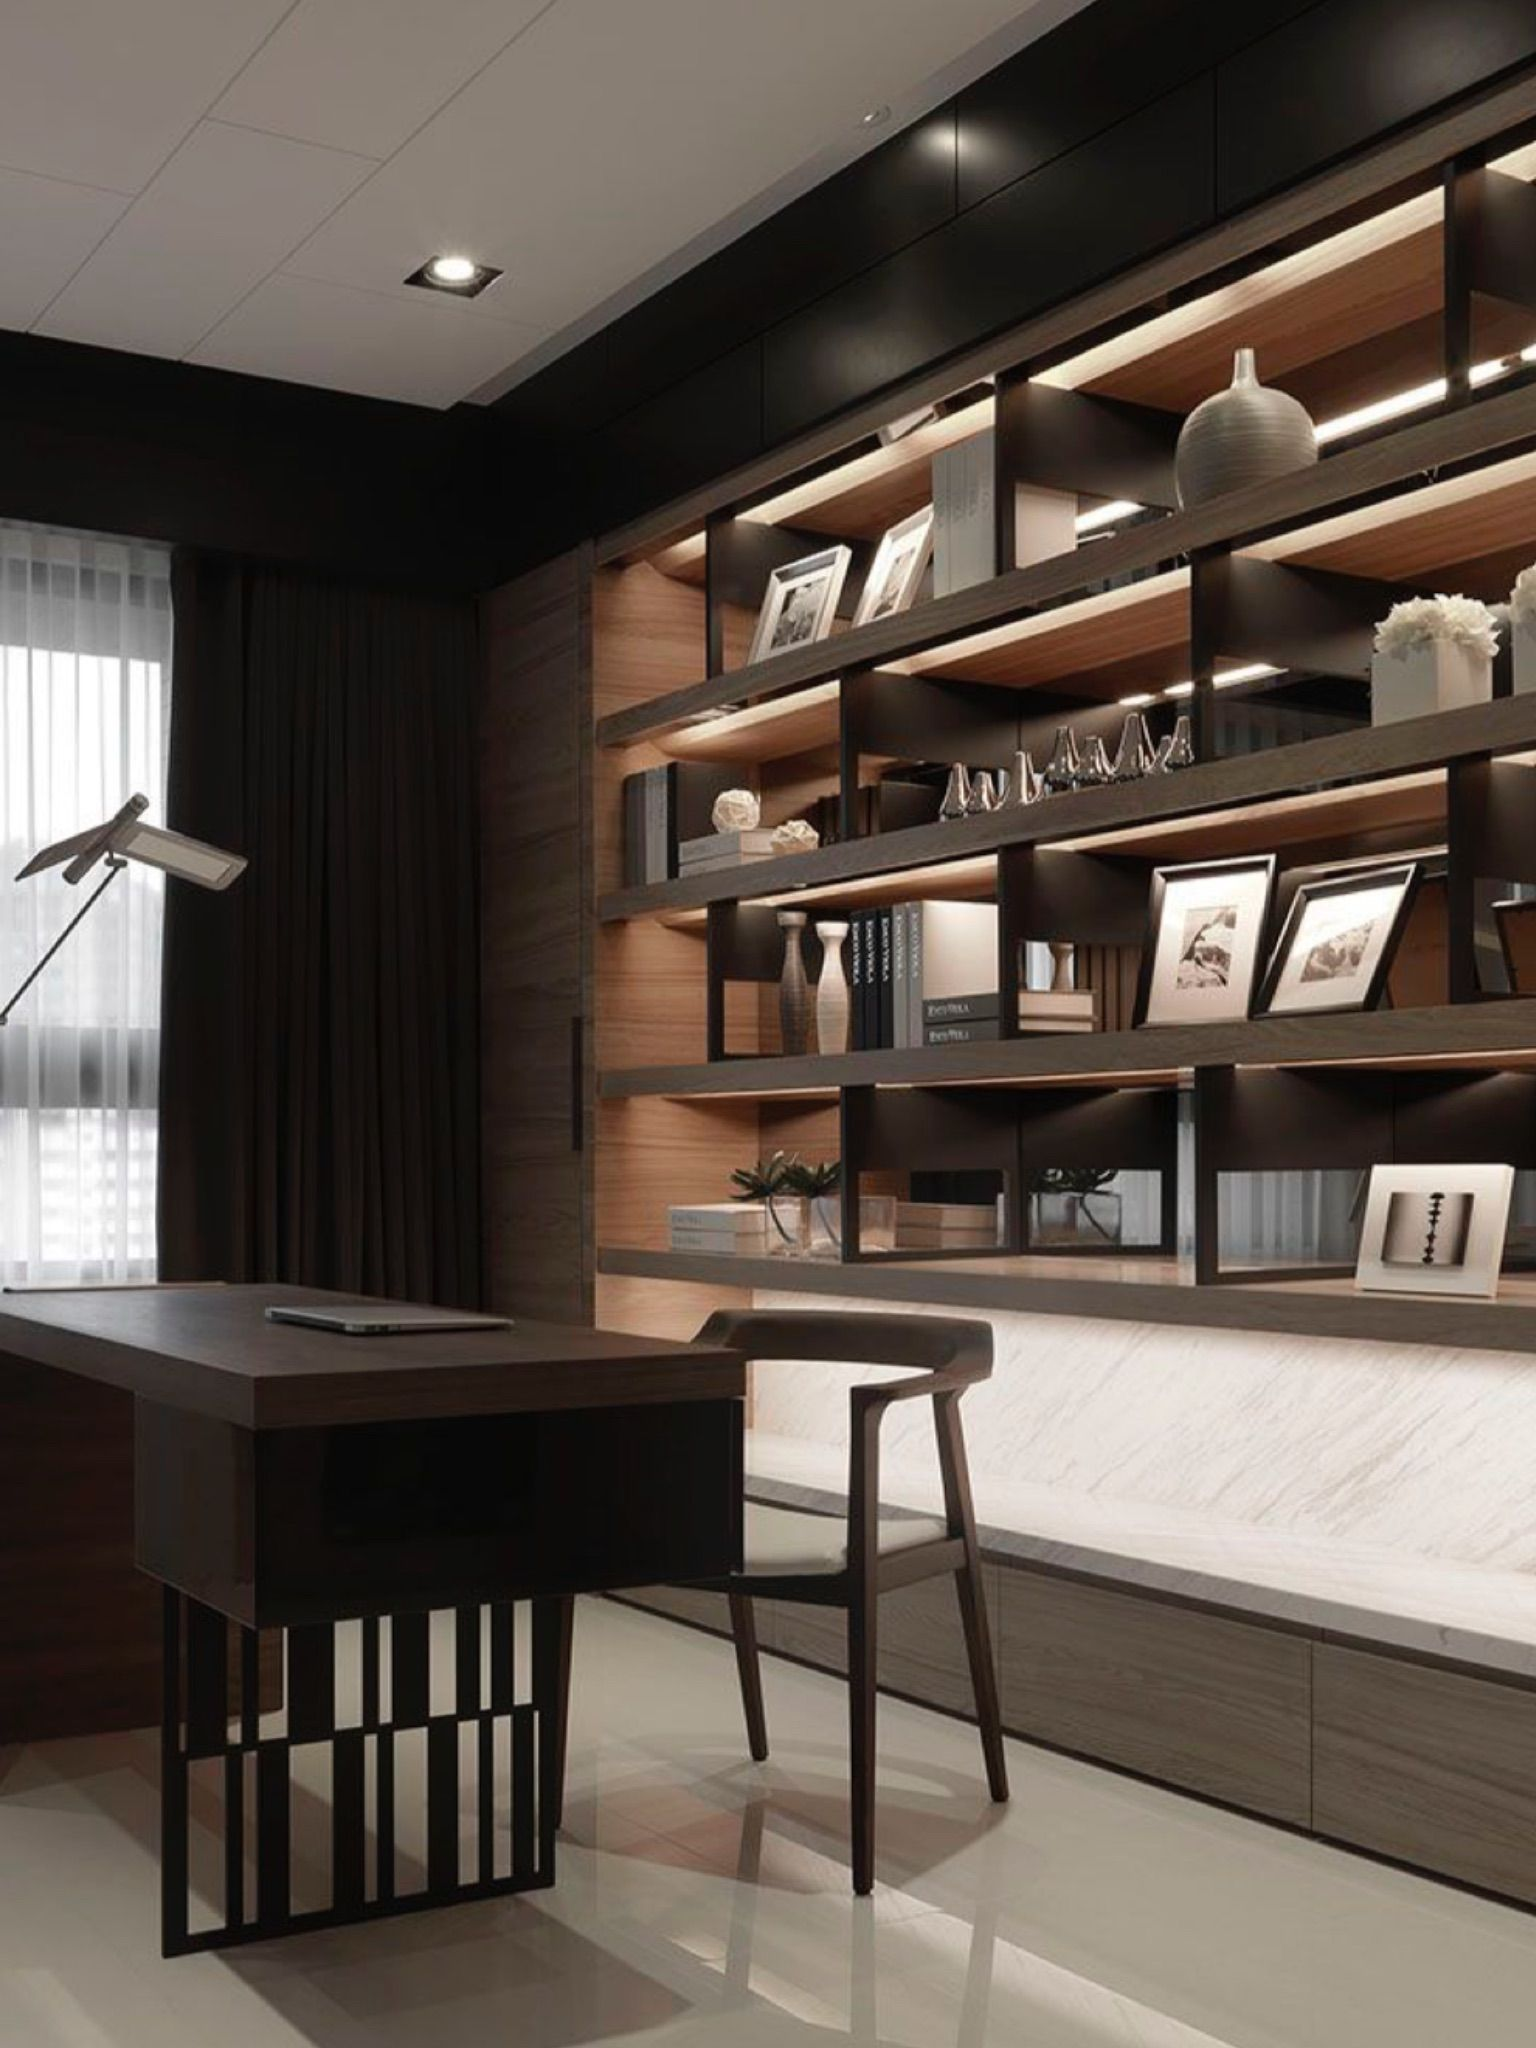 51 Inspiring Home Office Cabinet Design Ideas